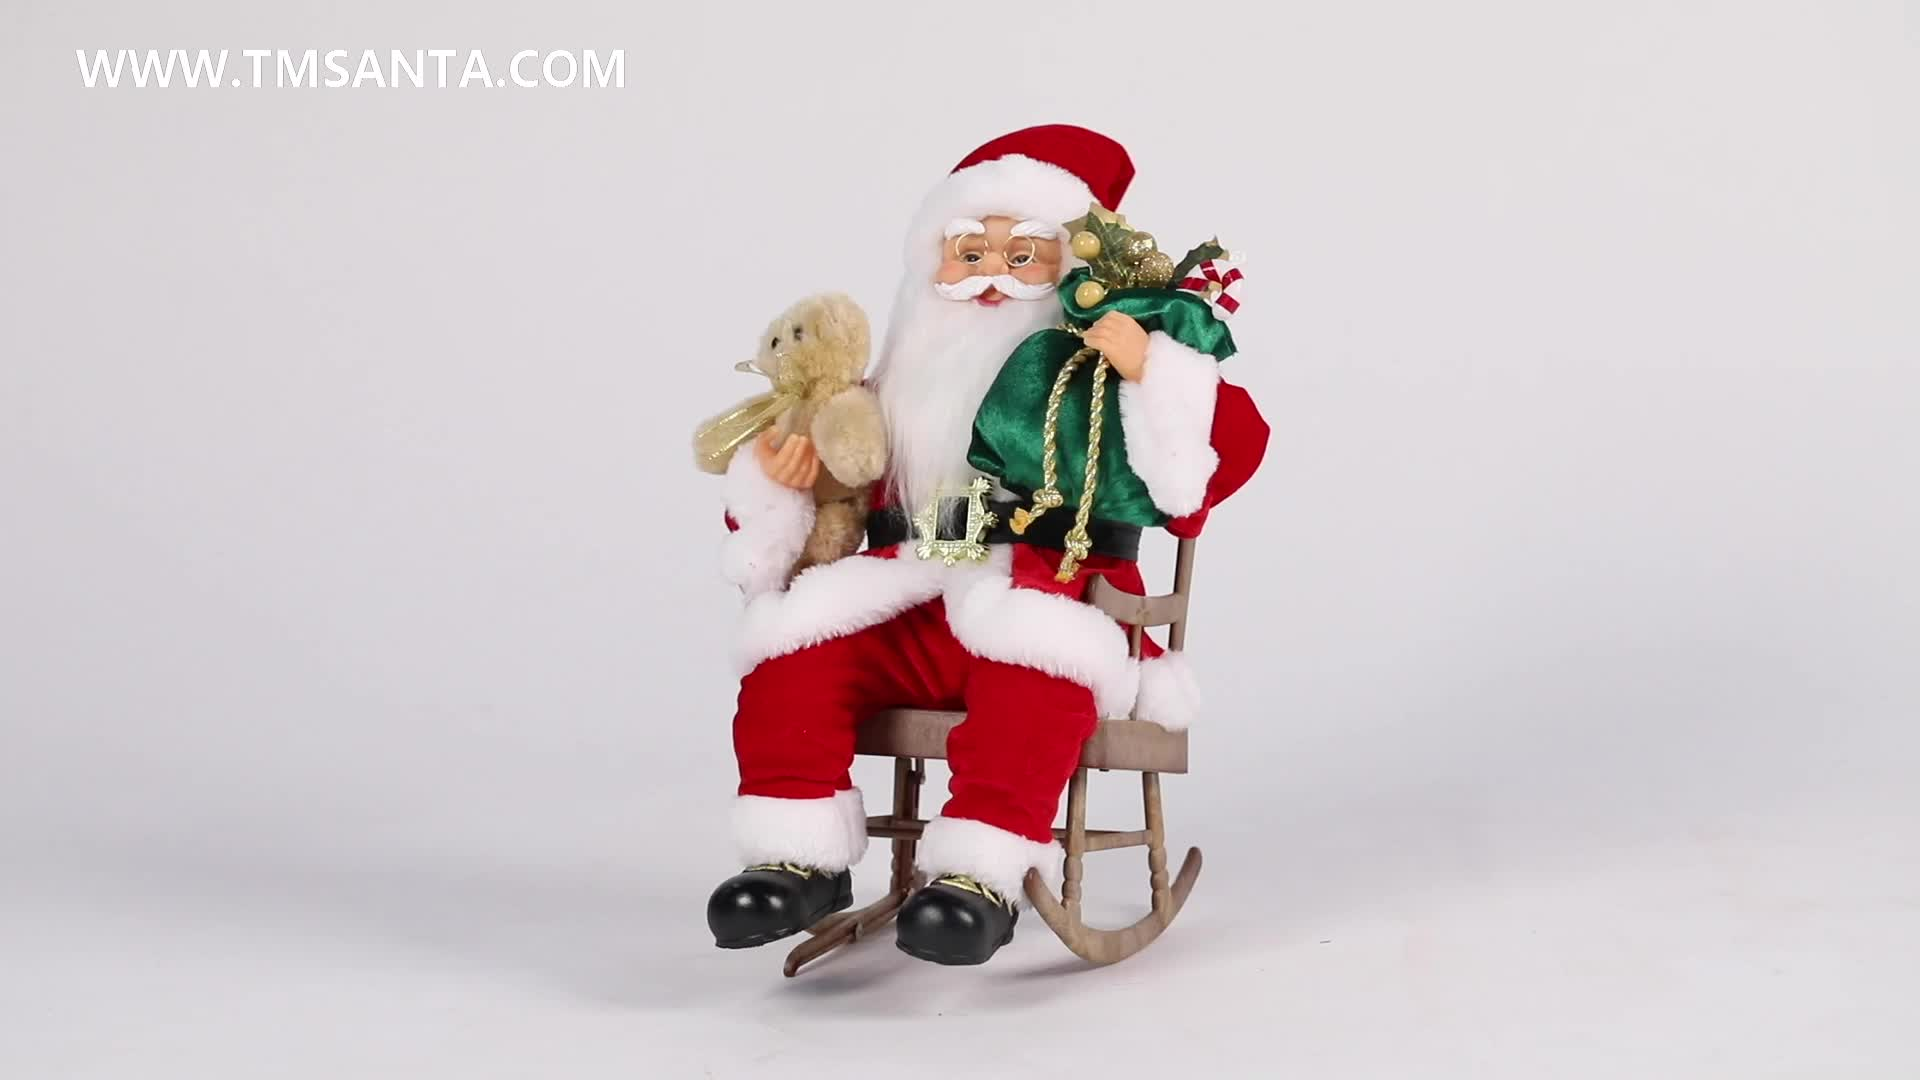 40cm Christmas Animated Santa Claus with Rocking Chair Musical Ornament Decoration Figurine Traditional Xmas Holiday Collection